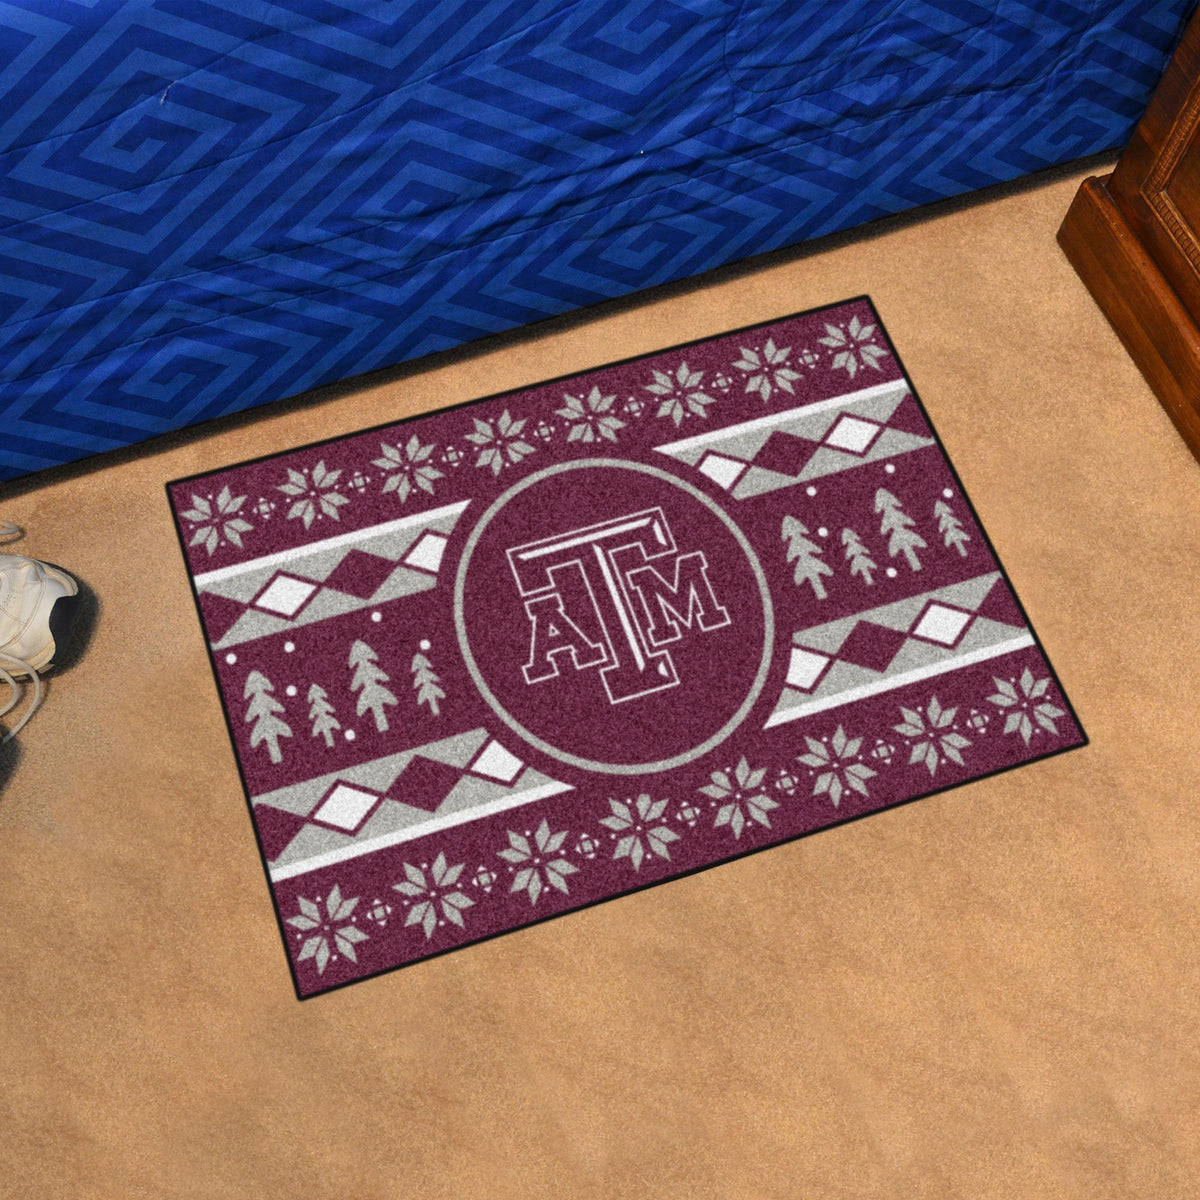 Collegiate - Holiday Sweater Starter Mat Collegiate Mats, Rectangular Mats, Holiday Sweater Starter Mat, Collegiate, Home Fan Mats Texas A&M